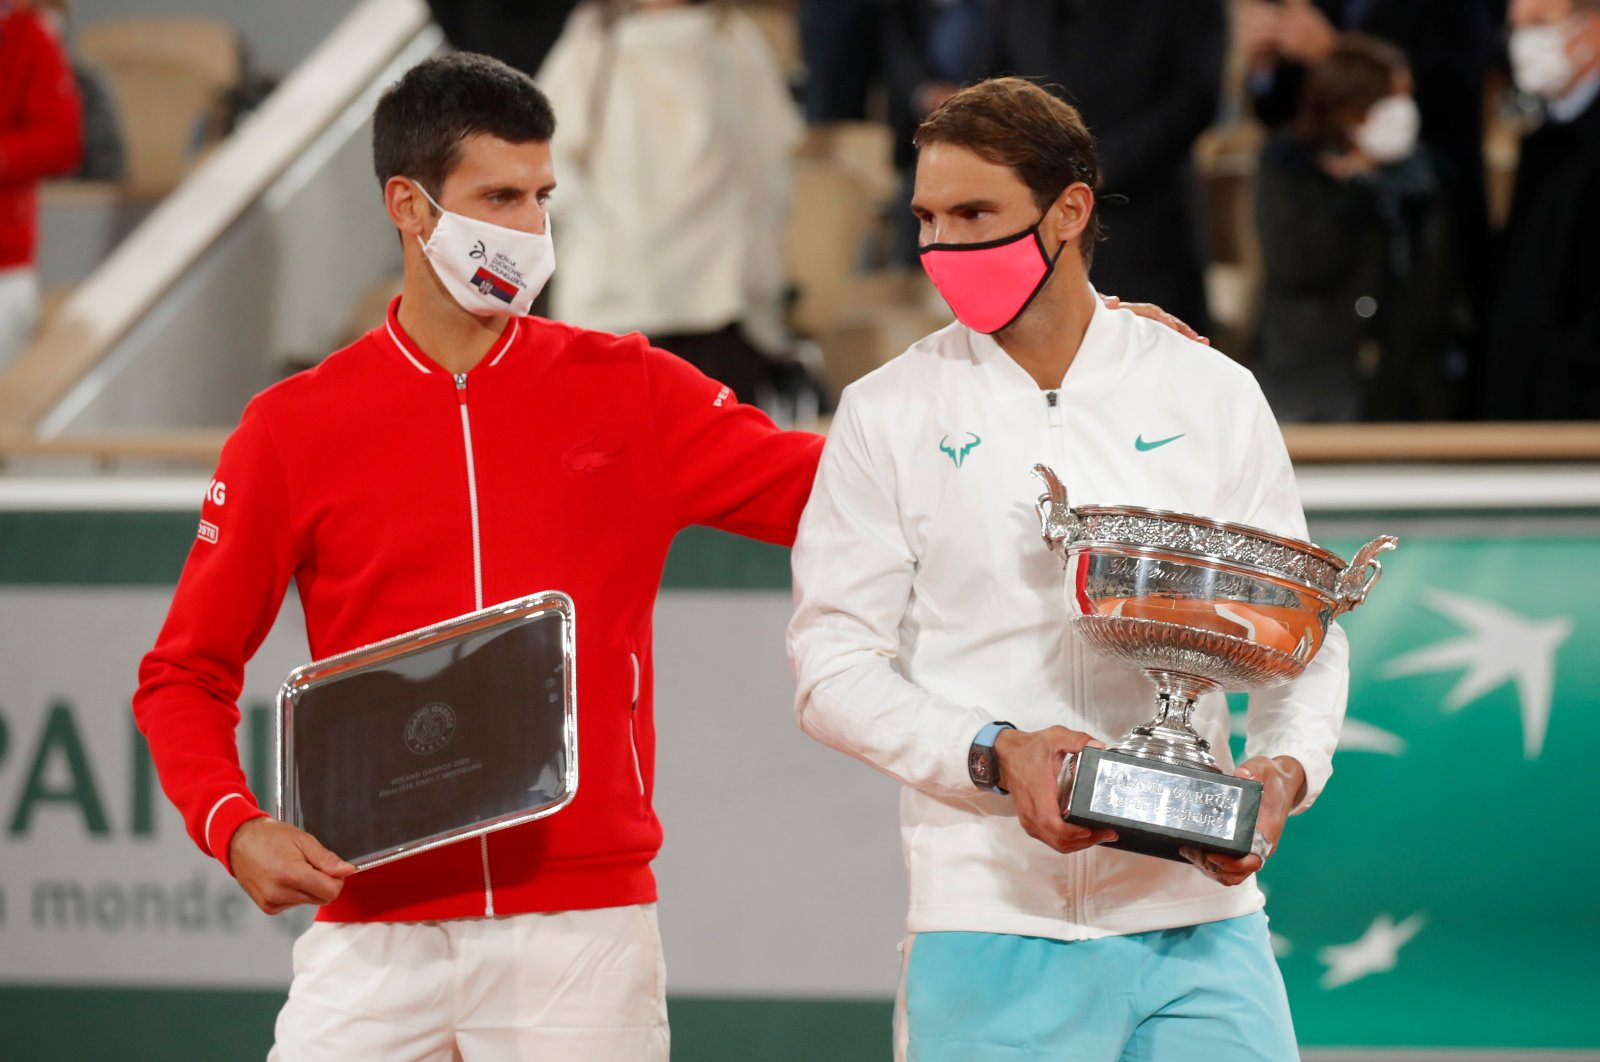 Runner-up Novak Djokovic of Serbia alongside French Open winner Rafael Nadal of Spain as they are presented with their trophies after the French Opean final, Roland Garros, Paris, France, Oct. 11, 2020. (Reuters Photo)